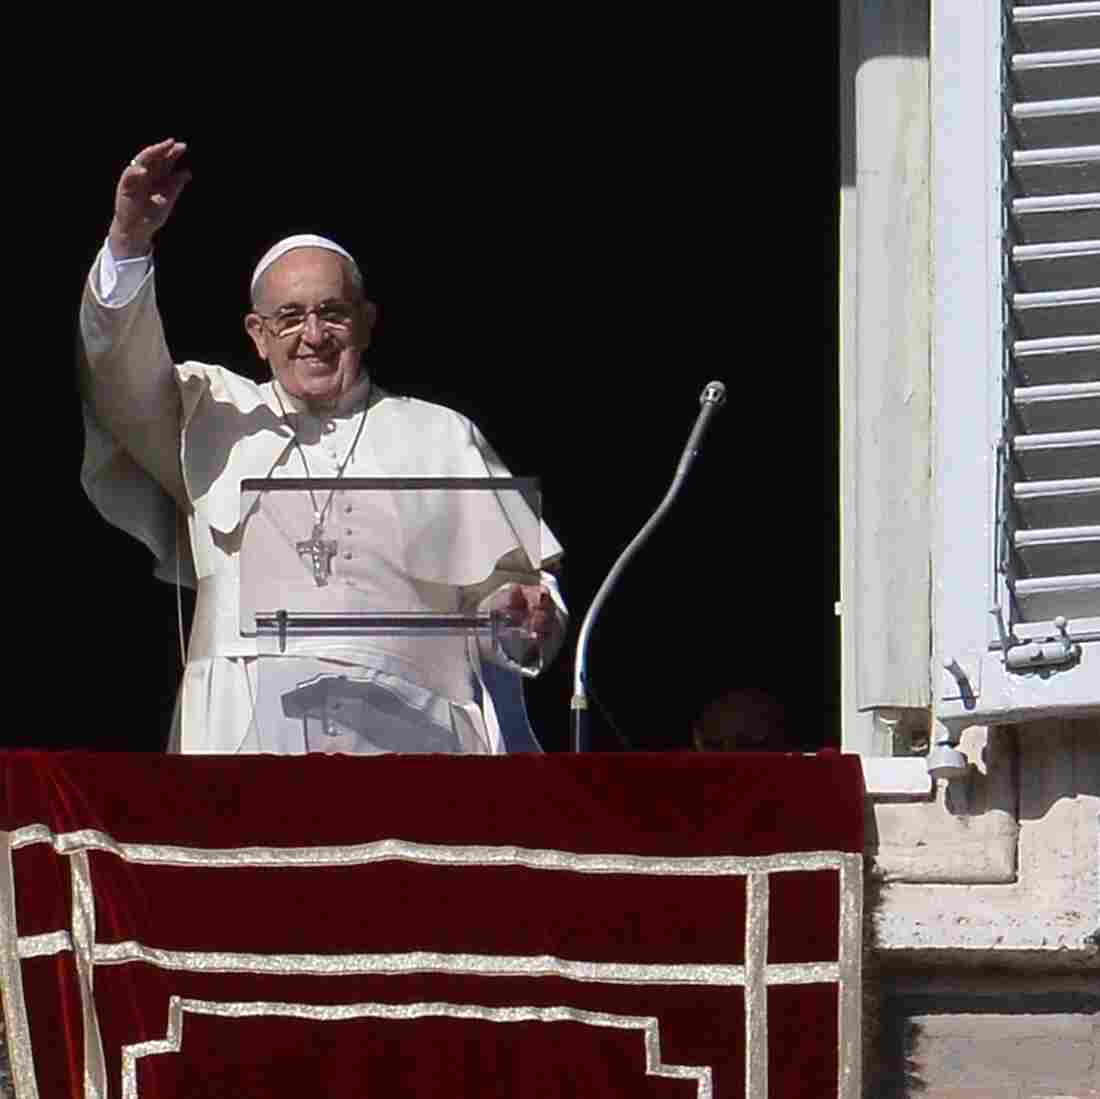 Pope Francis Confirms U.S. Visit In Fall Of 2015